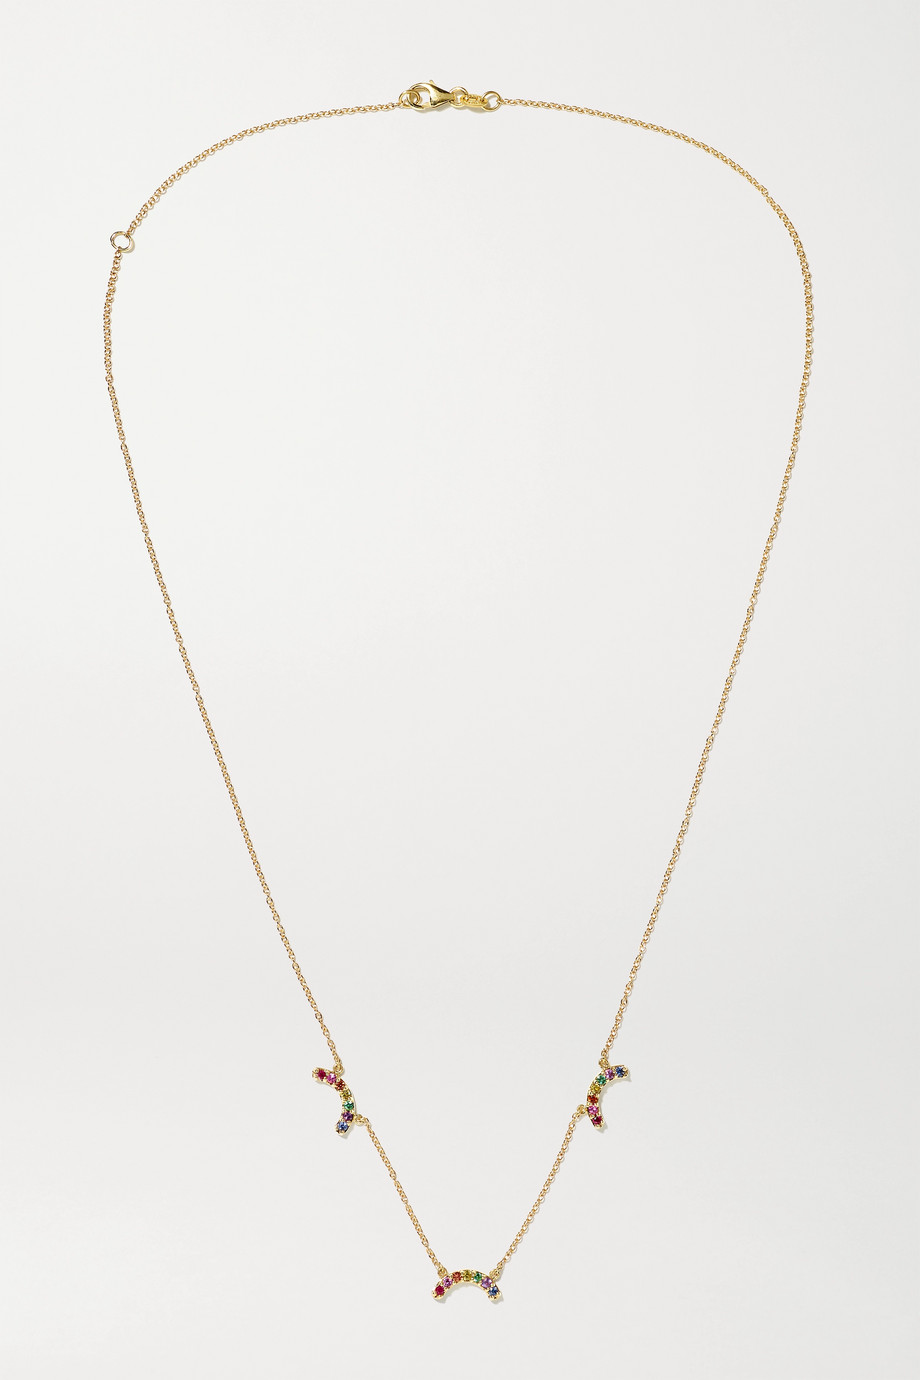 ANDREA FOHRMAN Single Rainbow 14-karat gold multi-stone necklace